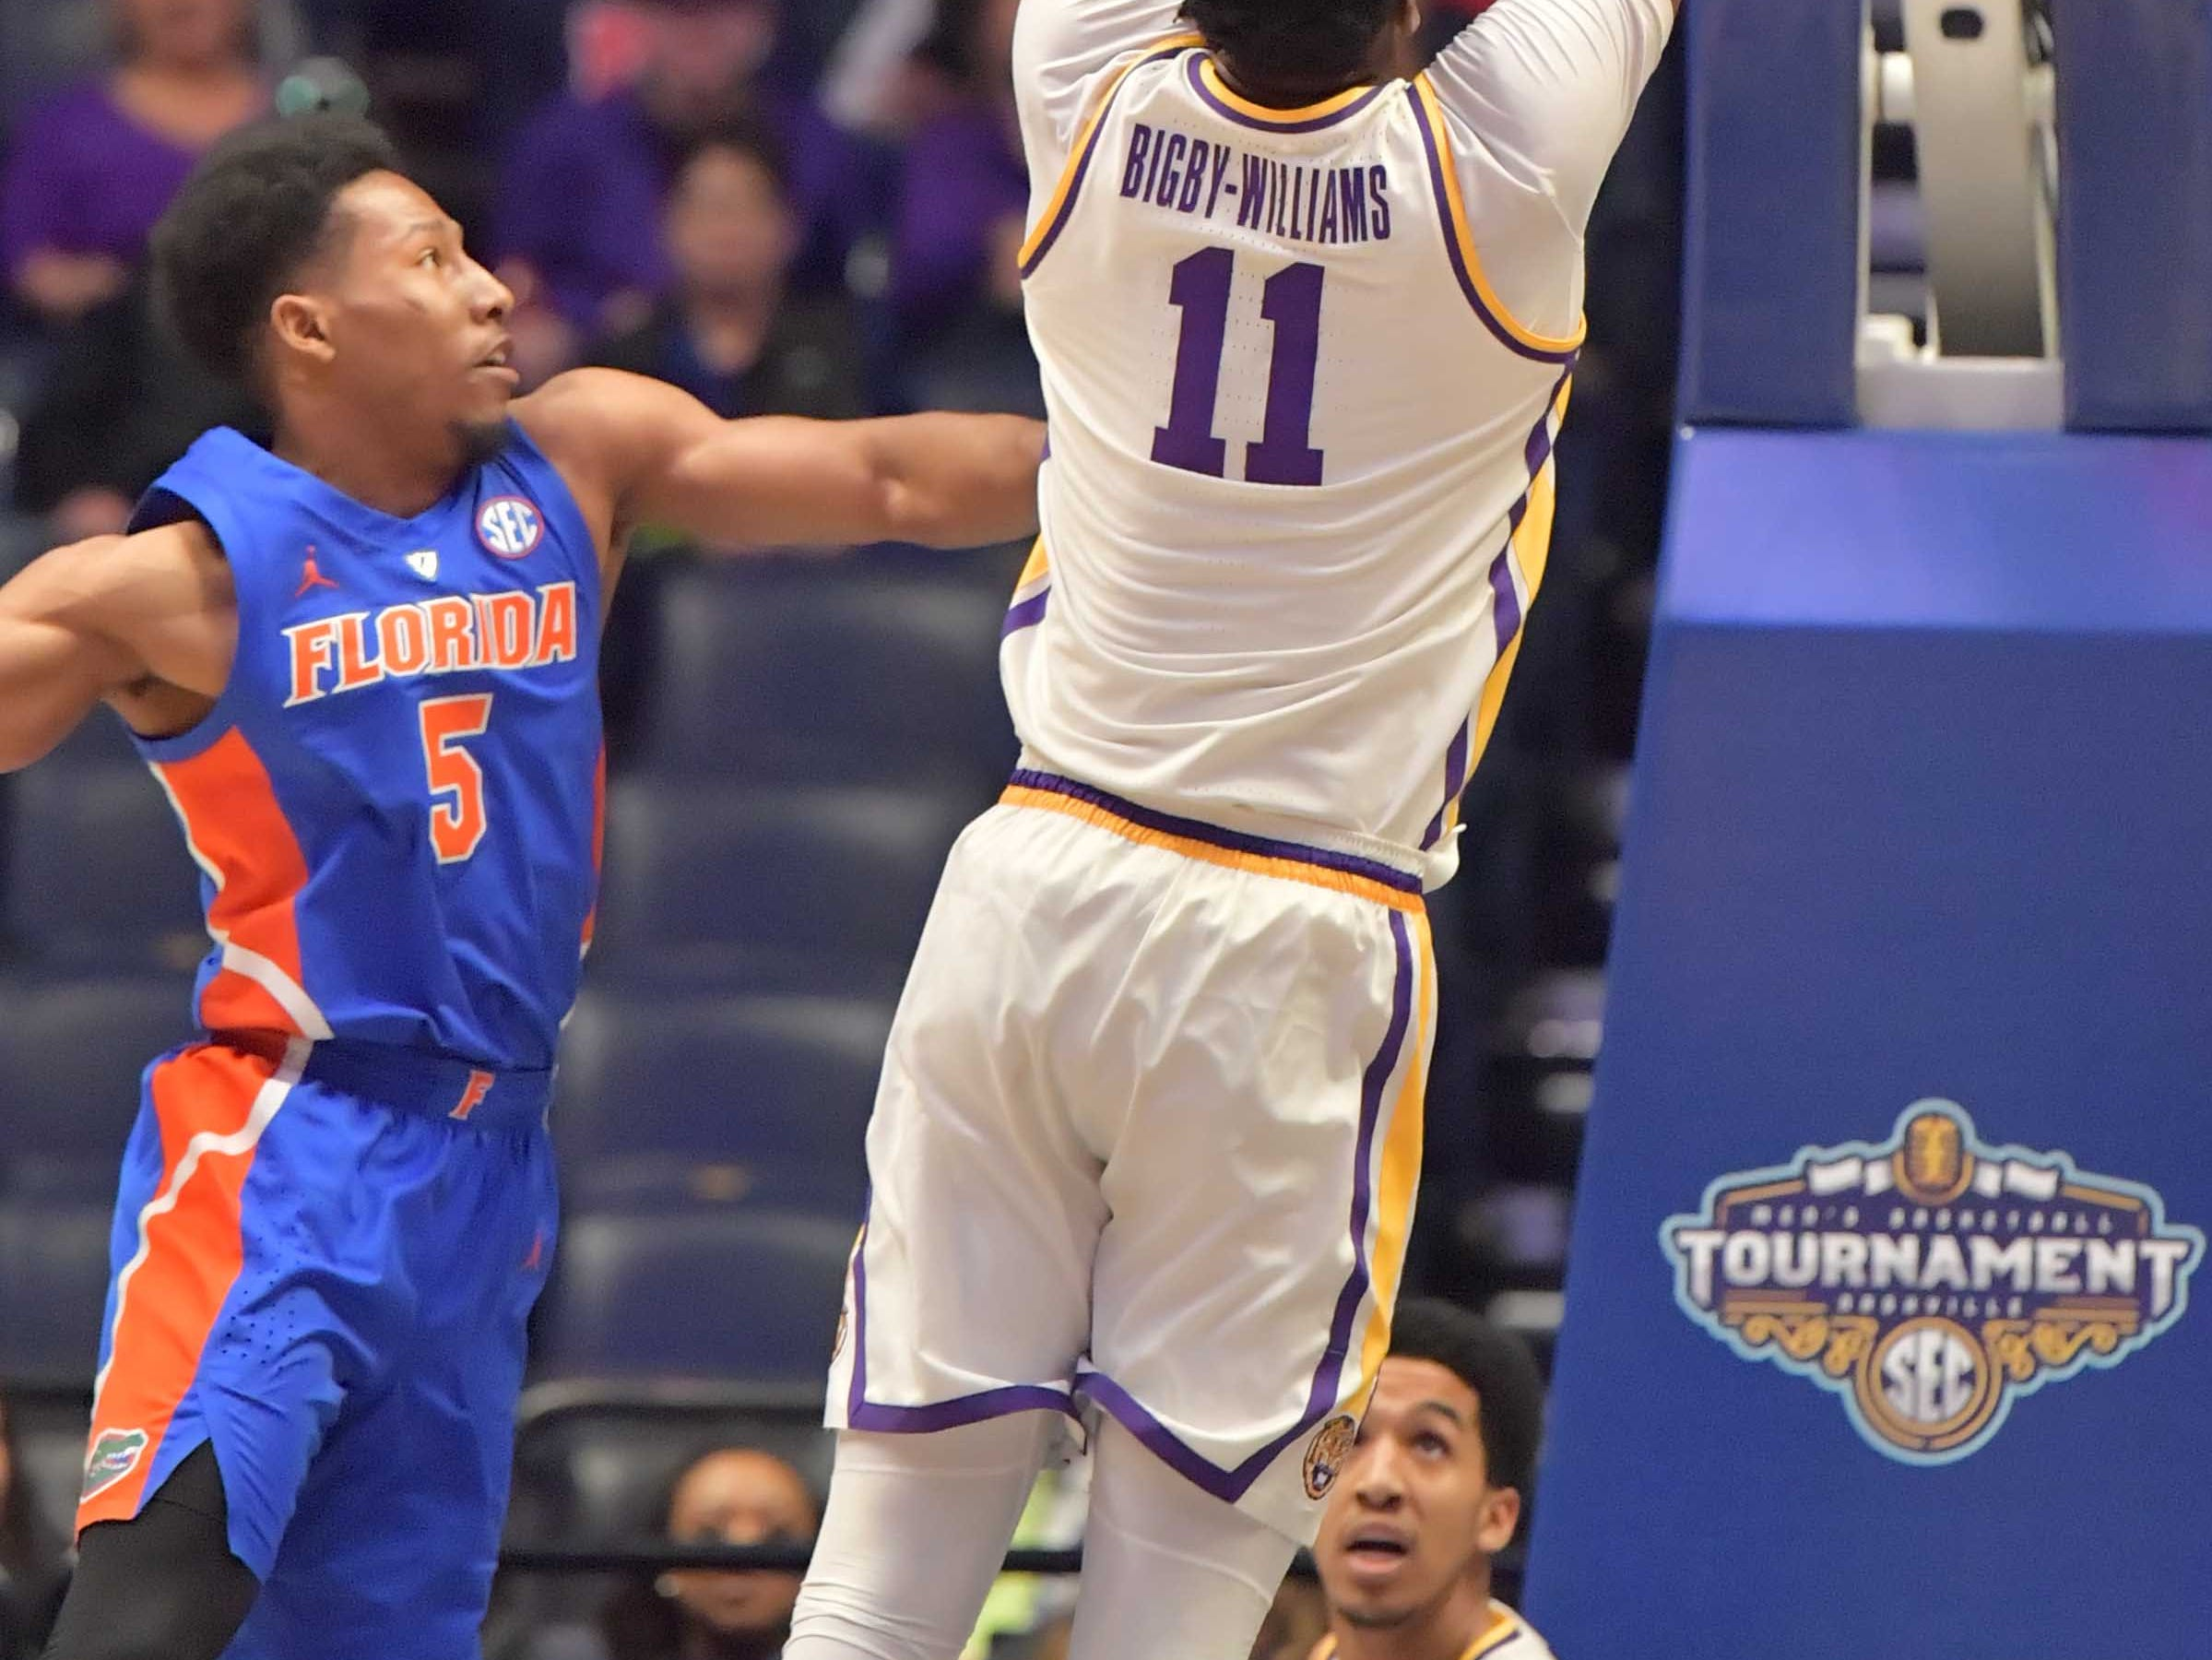 Mar 15, 2019; Nashville, TN, USA; LSU Tigers forward Kavell Bigby-Williams (11) dunks the ball against Florida Gators guard KeVaughn Allen (5) during the first half of game seven in the SEC conference tournament at Bridgestone Arena. Mandatory Credit: Jim Brown-USA TODAY Sports